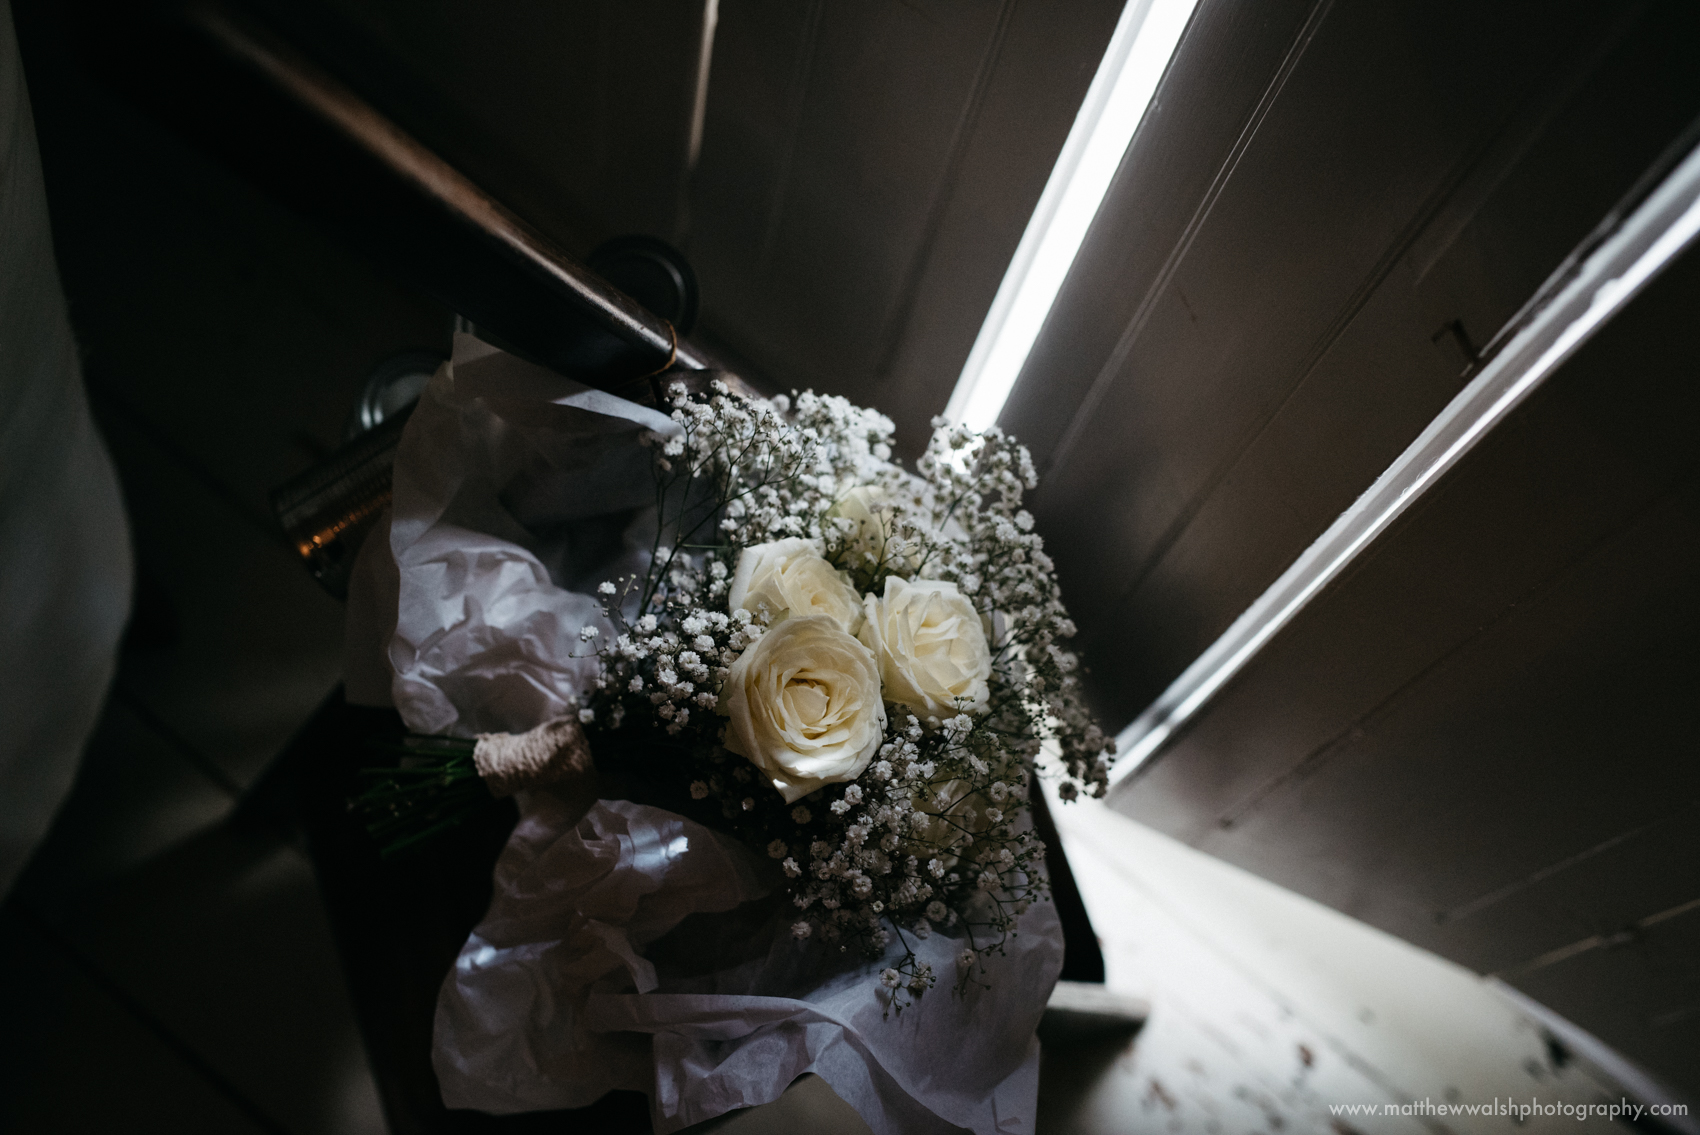 The brides bouquet resting in the sunlight